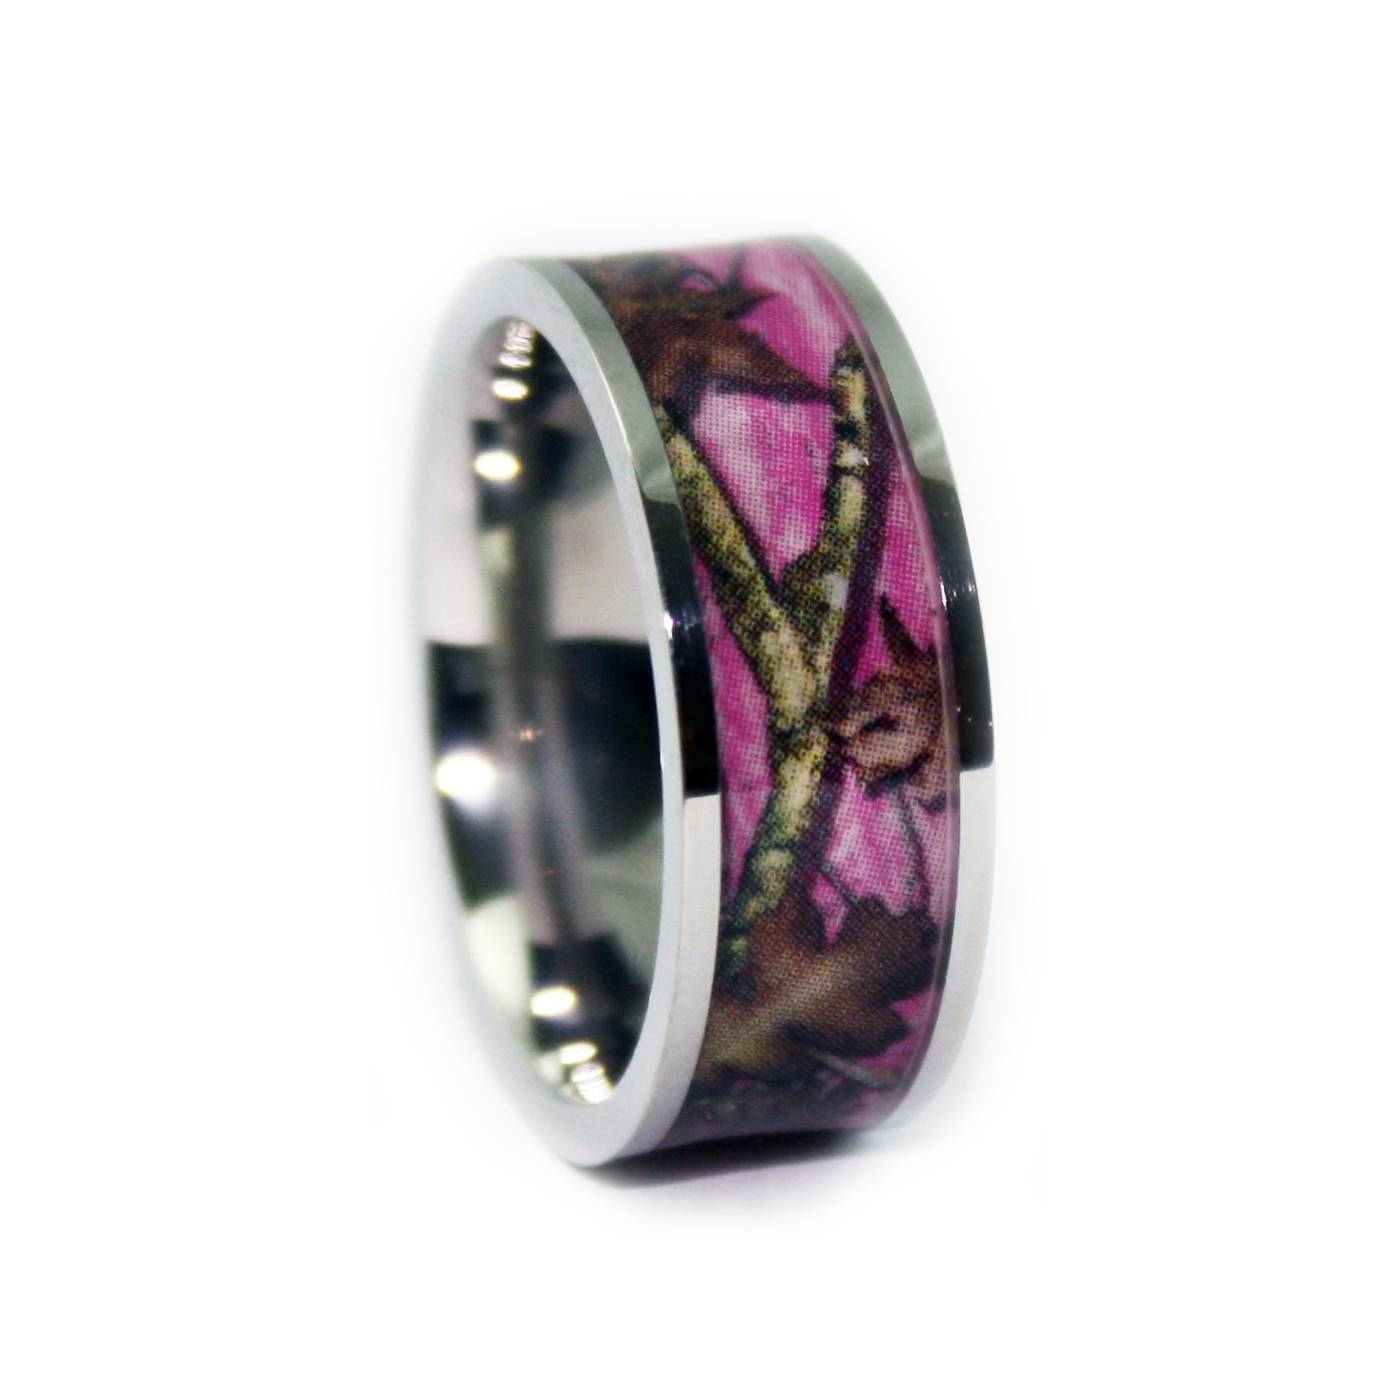 pink camo wedding rings flat titanium camouflage band1 camo regarding camo wedding bands - Pink Camo Wedding Rings For Her